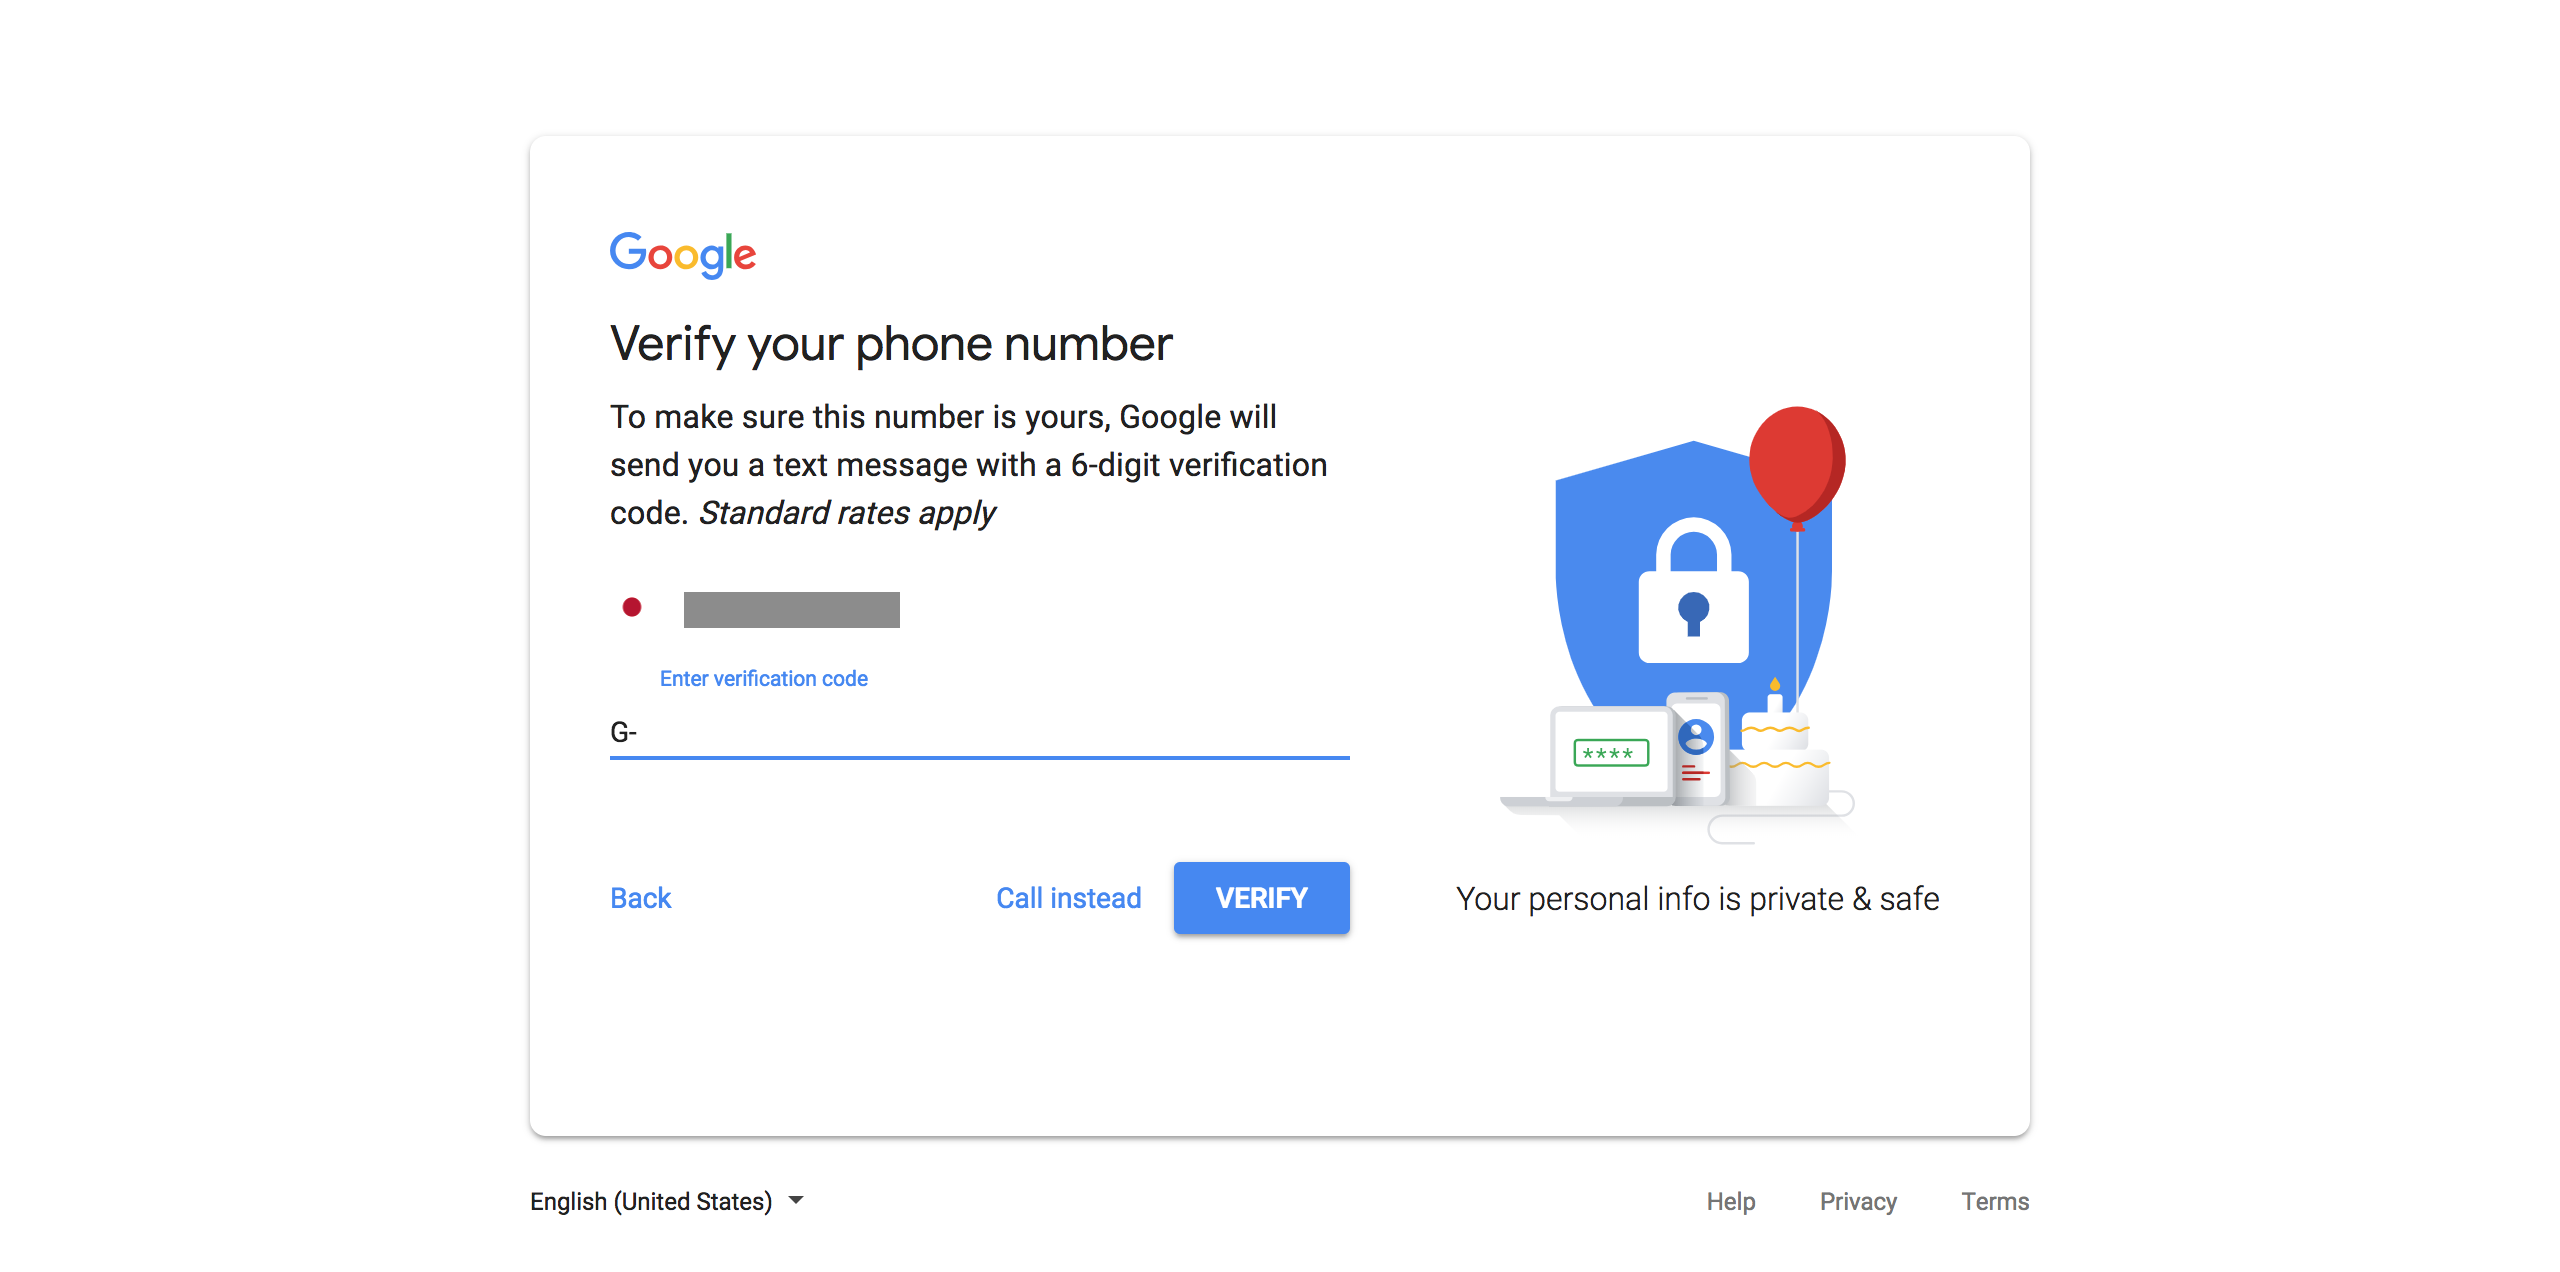 Entering the phone number verification code